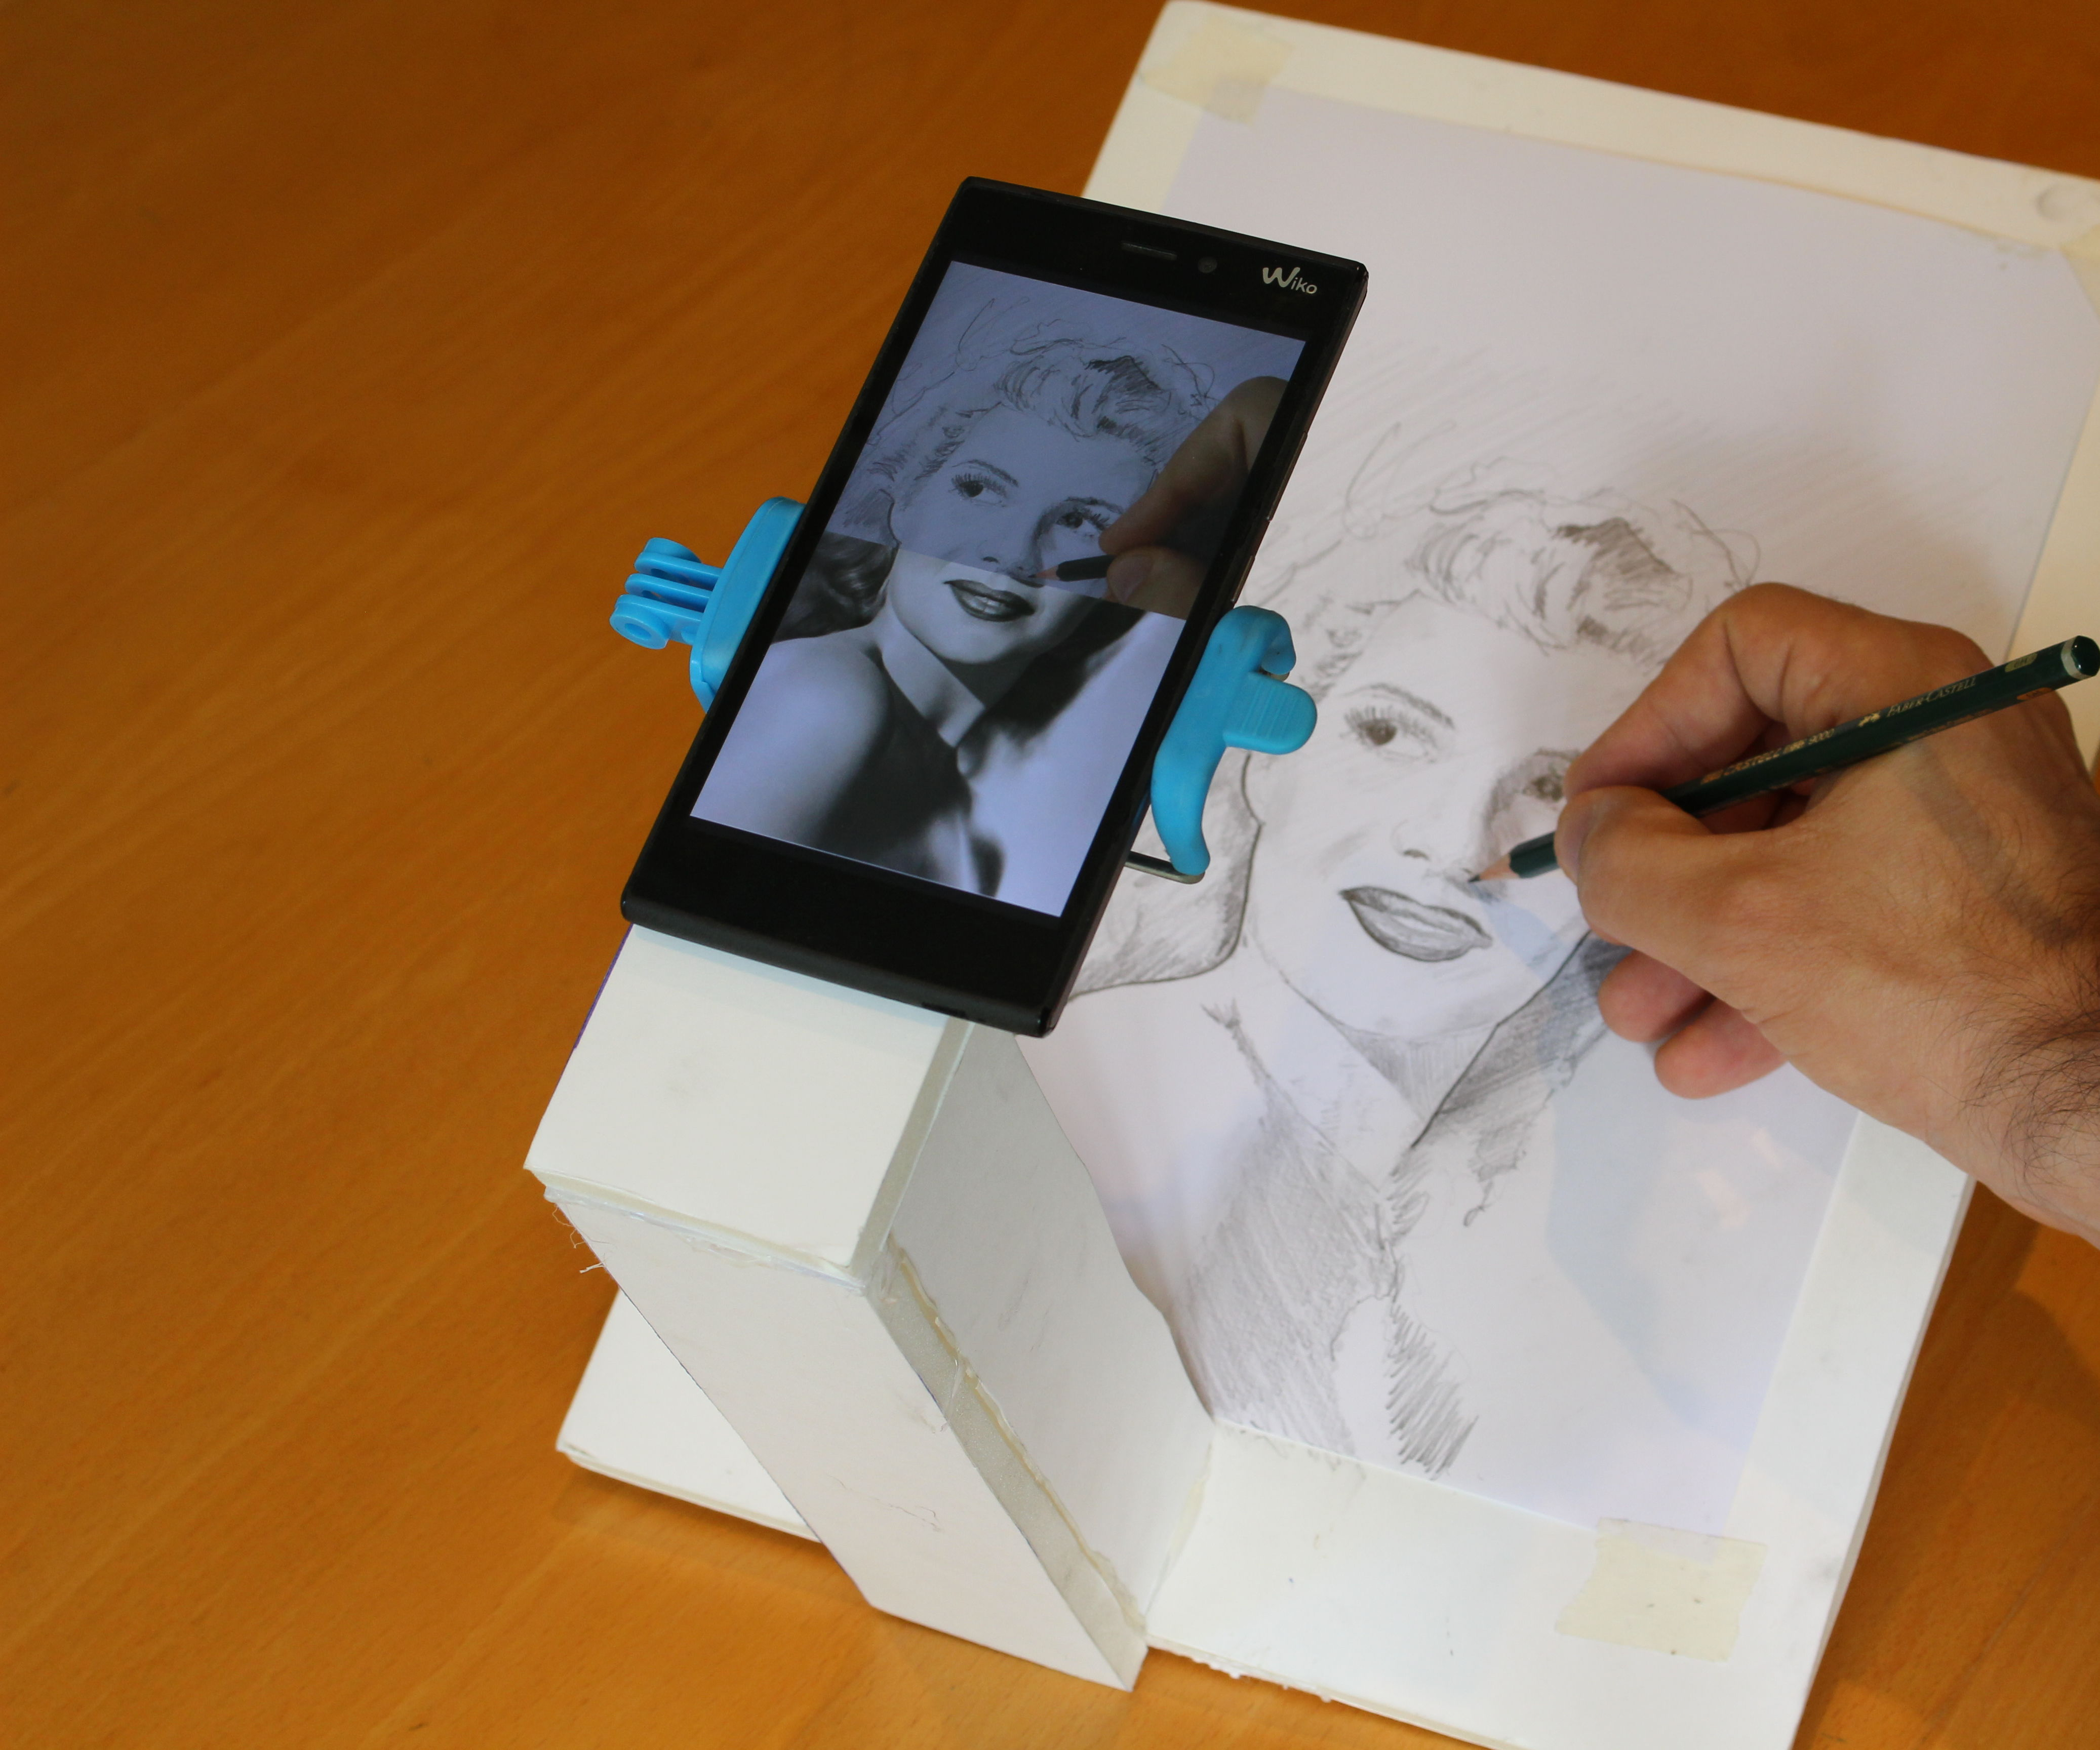 Making an Augmented Reality Sketchpad